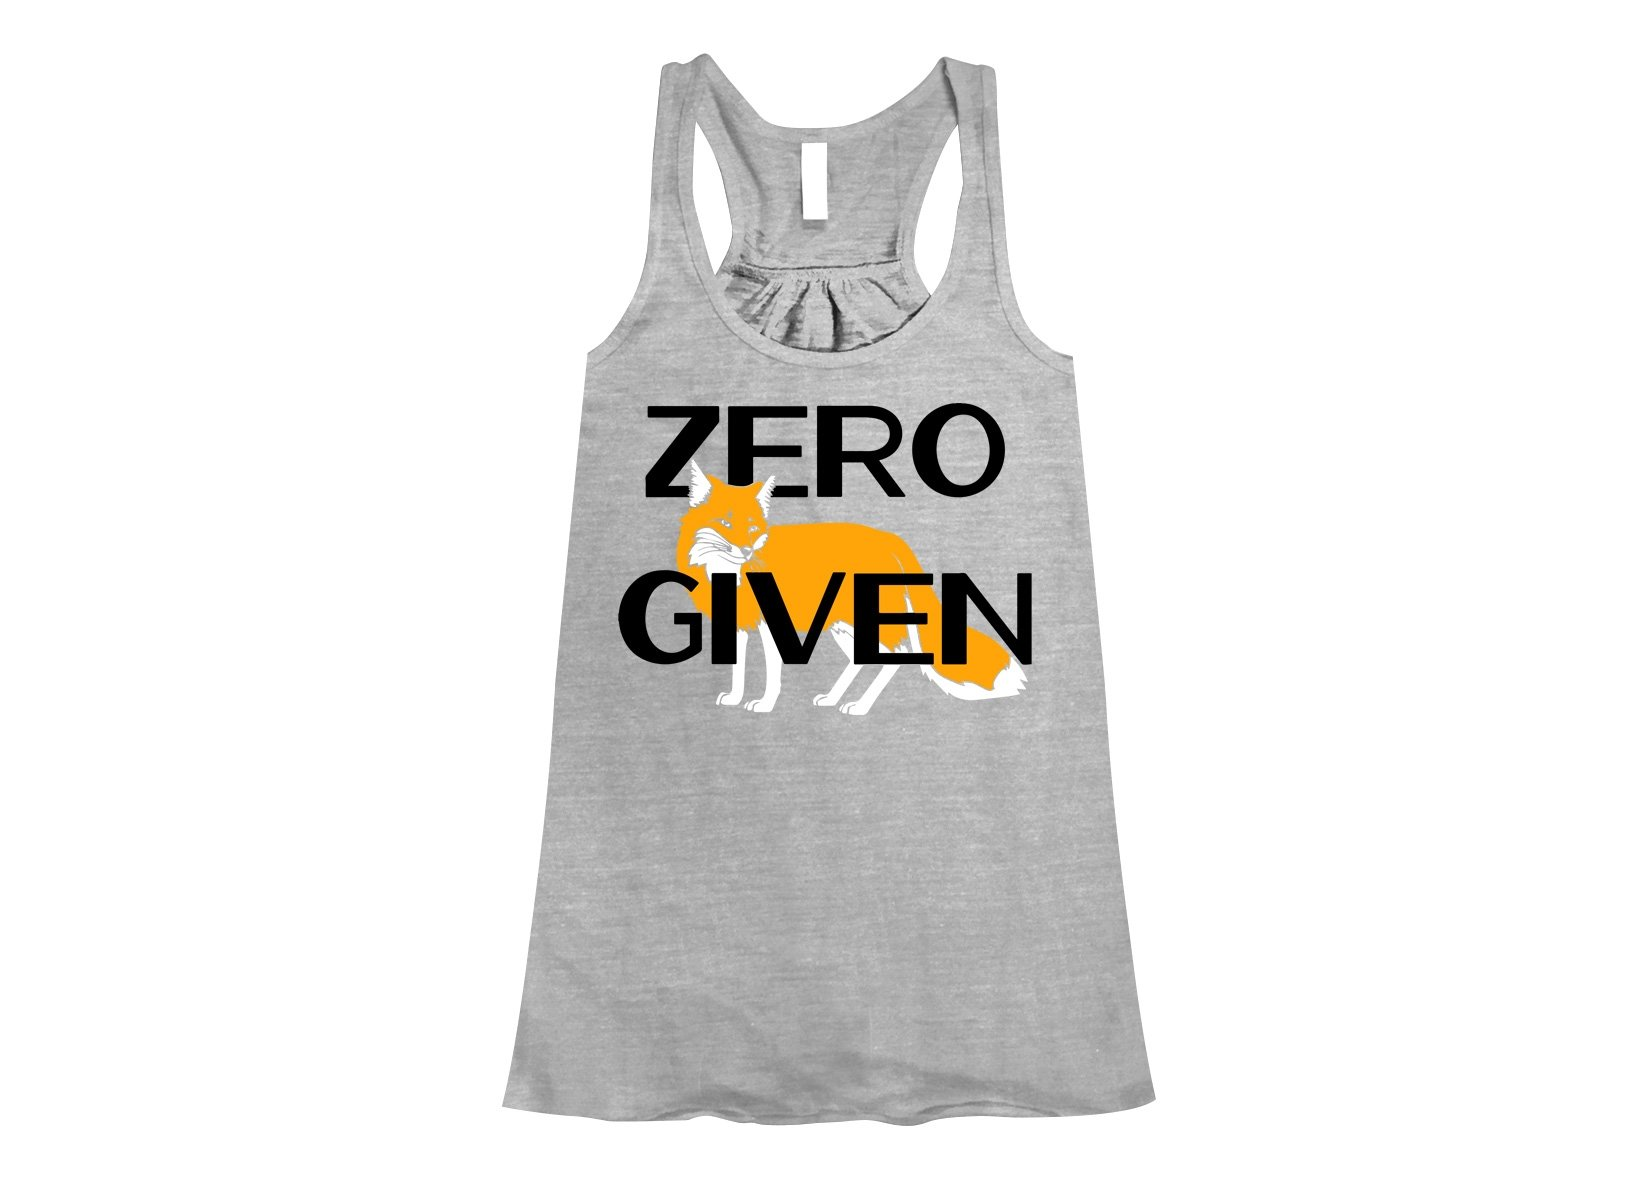 Zero Fox Given on Womens Tanks T-Shirt